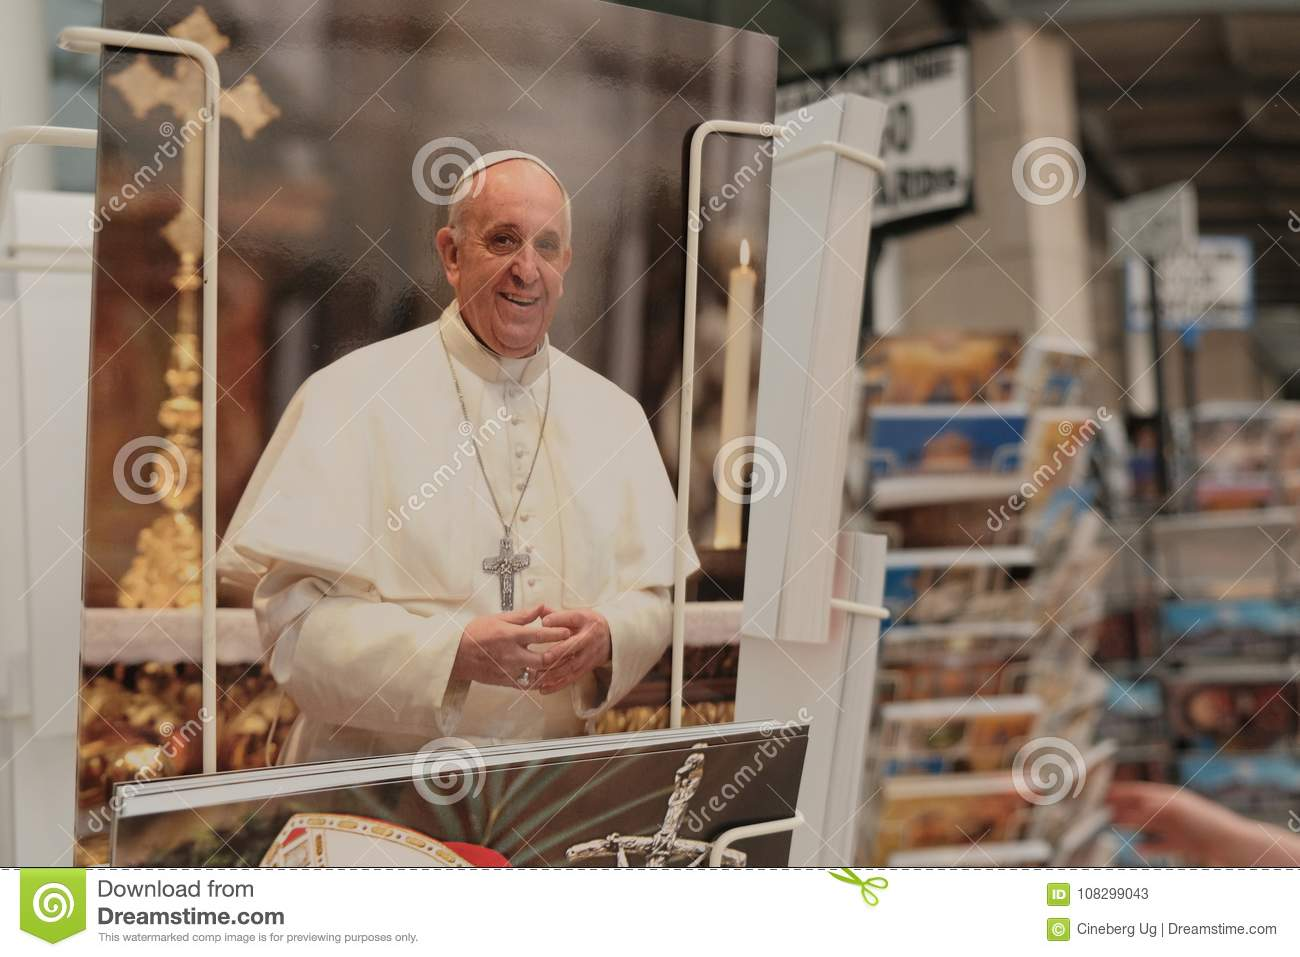 The Current Pope